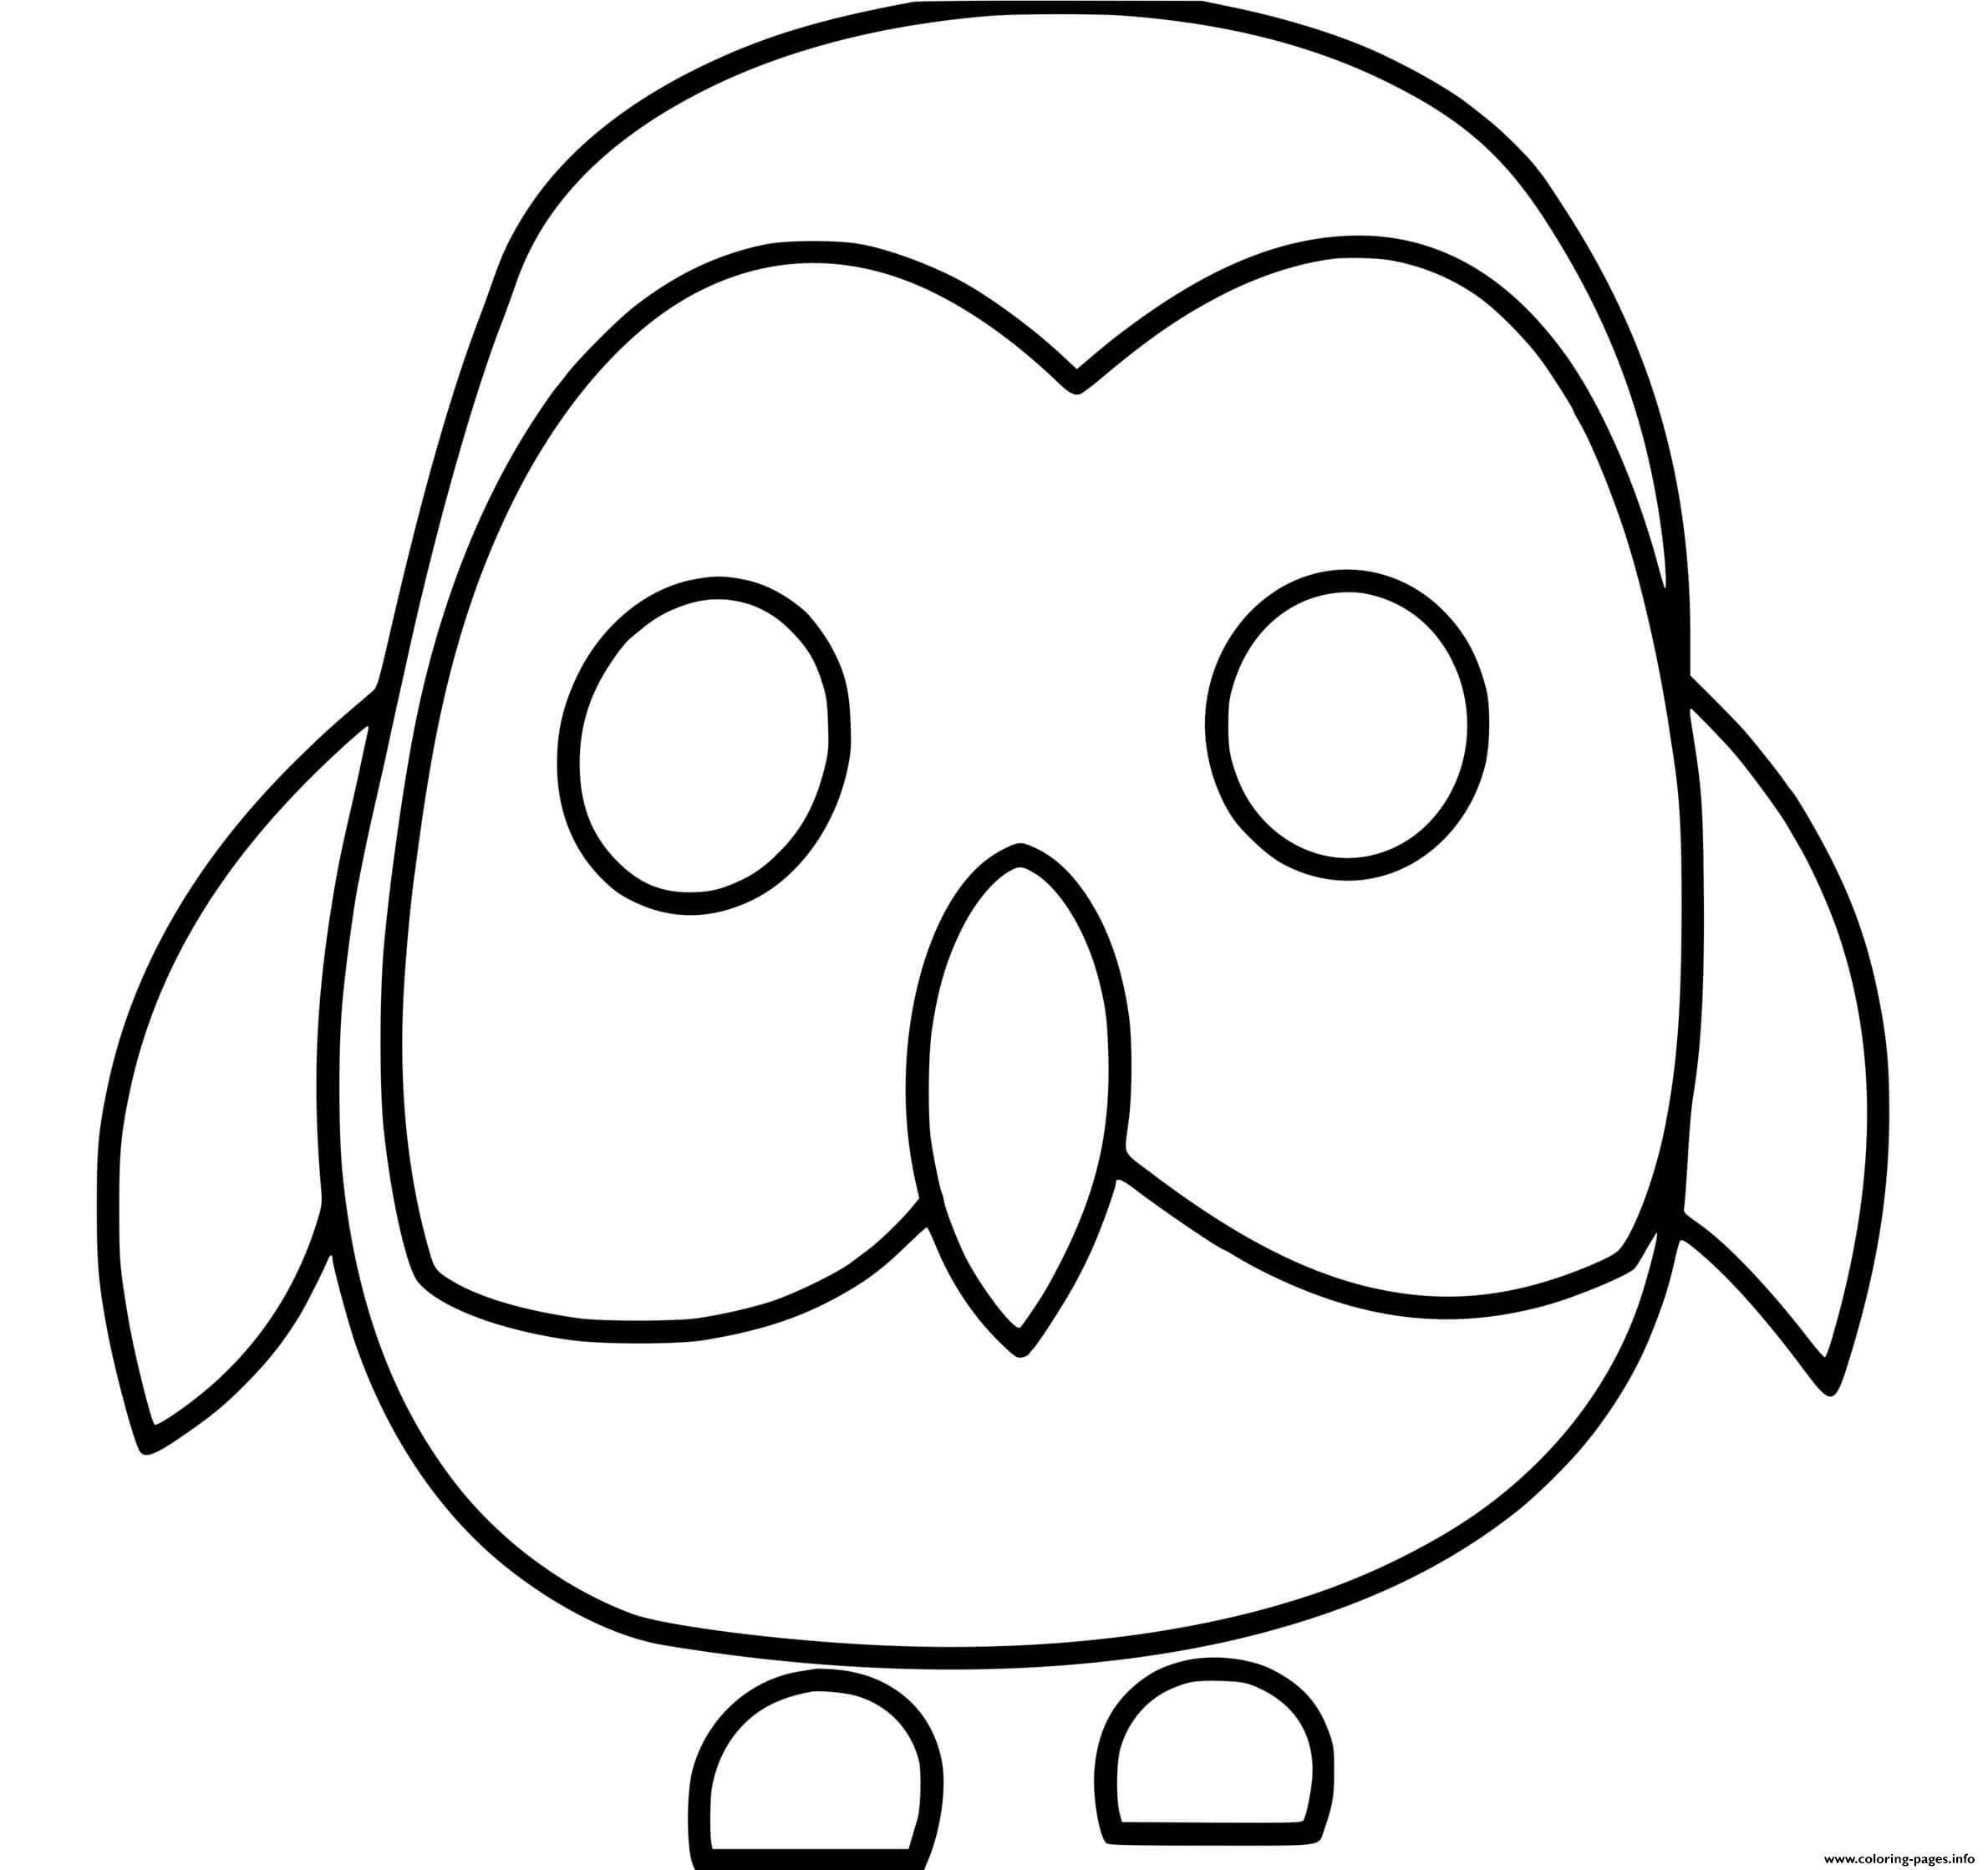 Roblox Adopt Me Owl Coloring Pages Printable